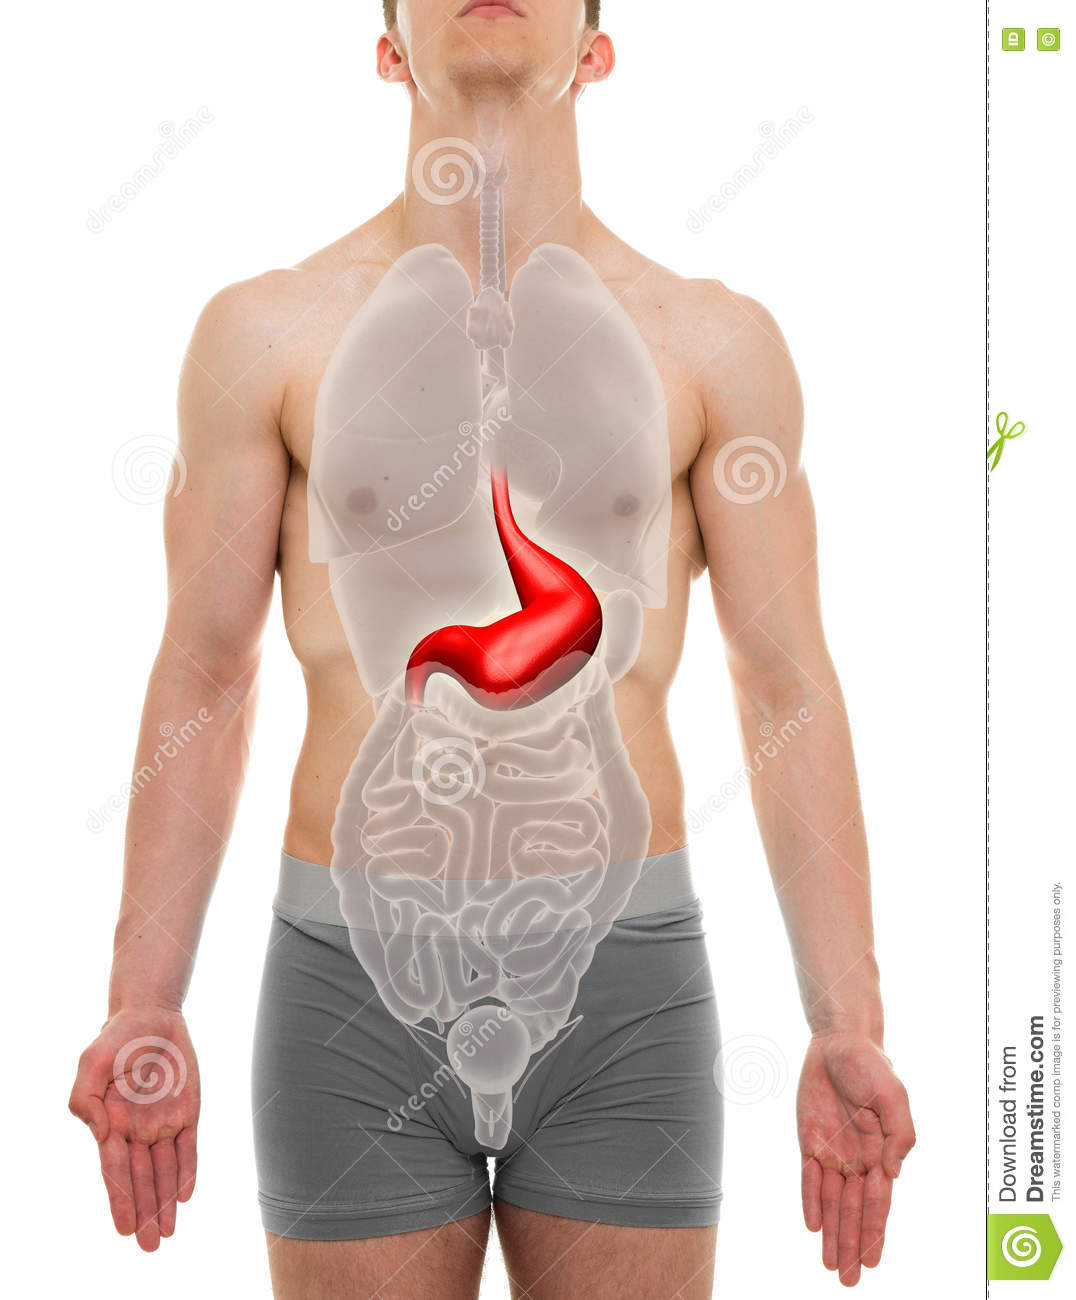 Stomach Male - Internal Organs Anatomy - 3D Illustration Stock Image ...